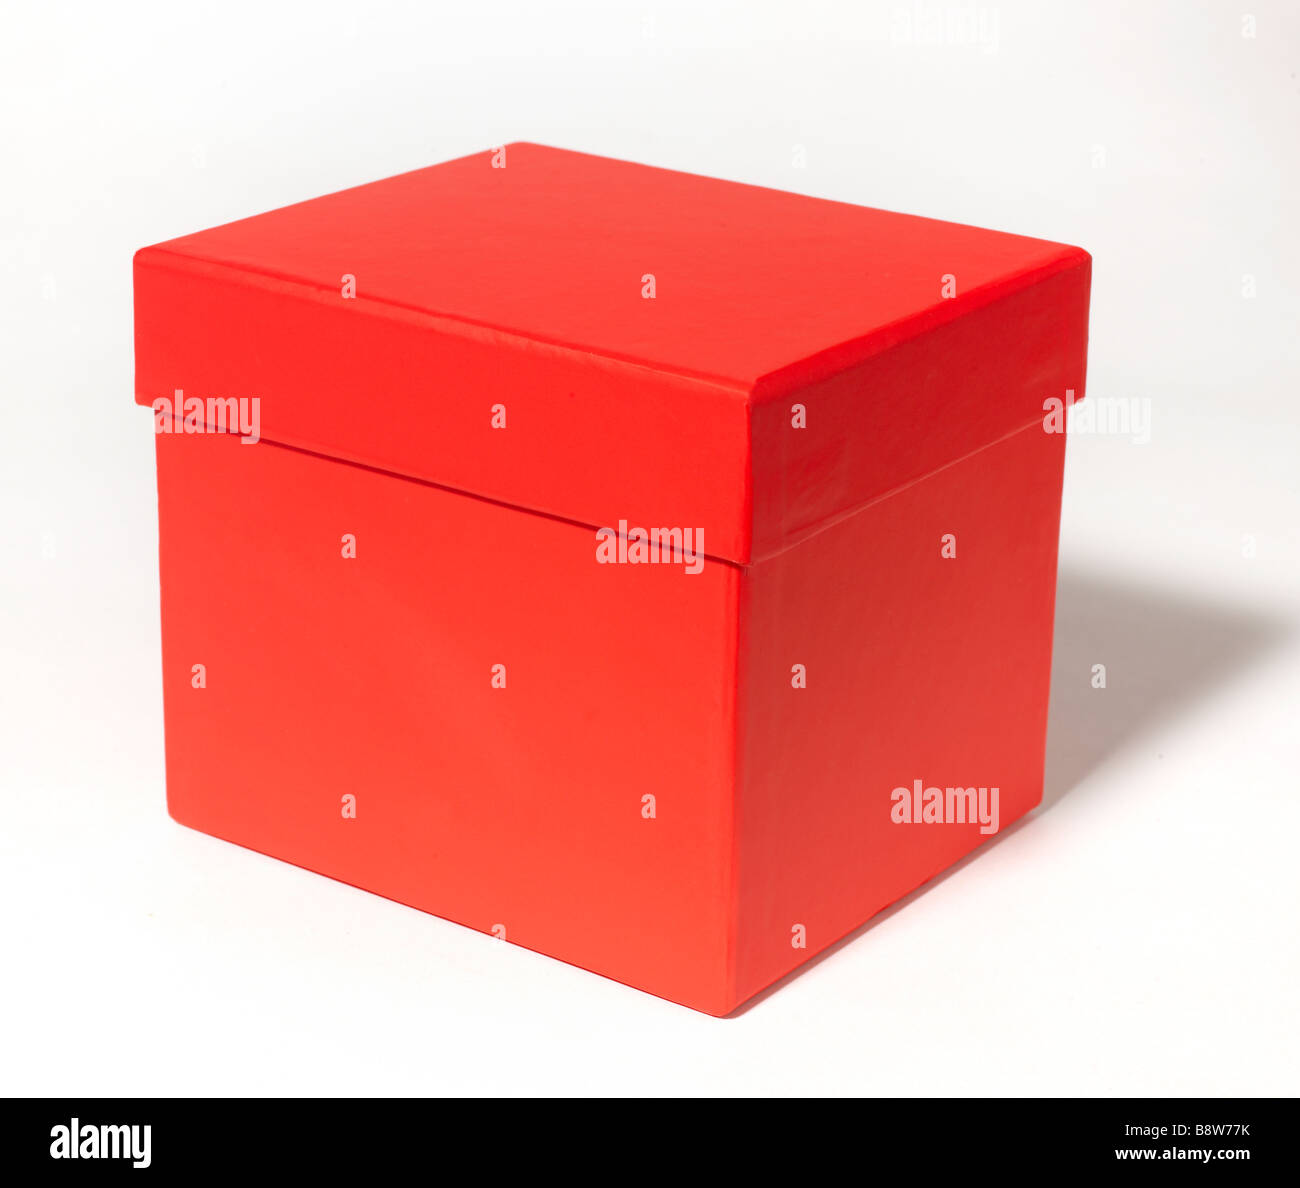 Red Gift Box Present - Stock Image